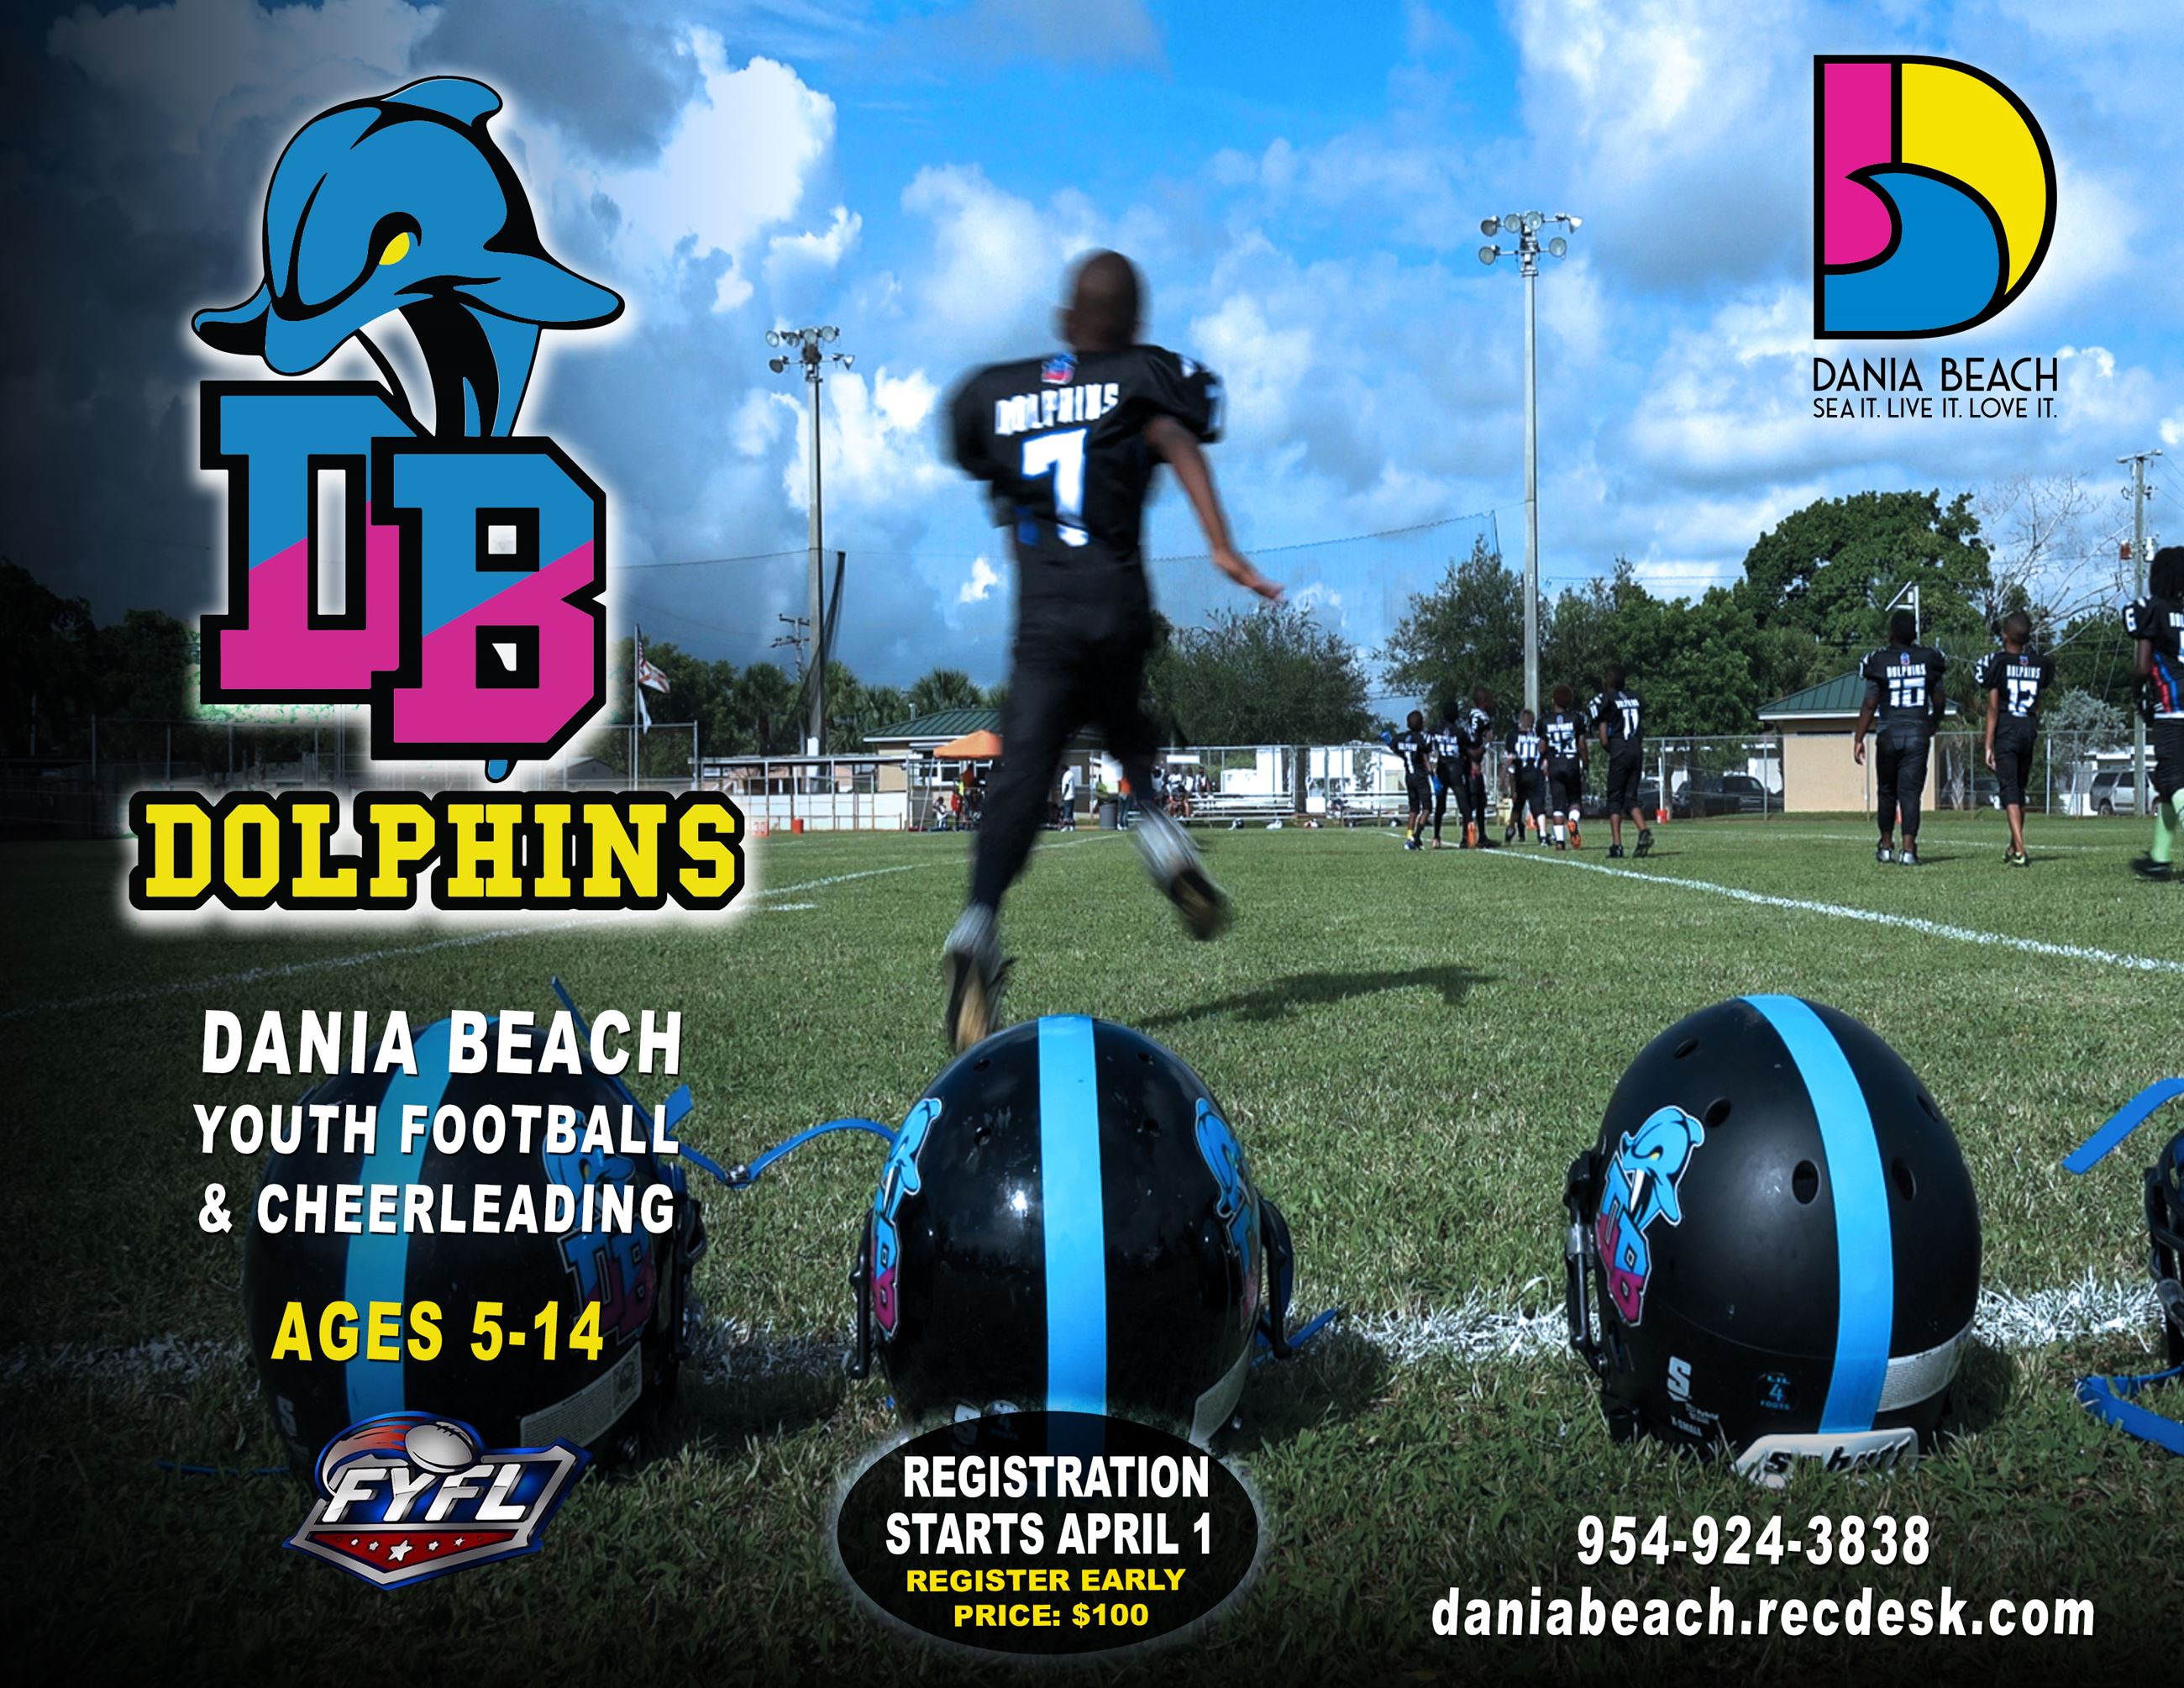 Dolphins Football 2020 Dania Beach Youth Football and Cheer-leading